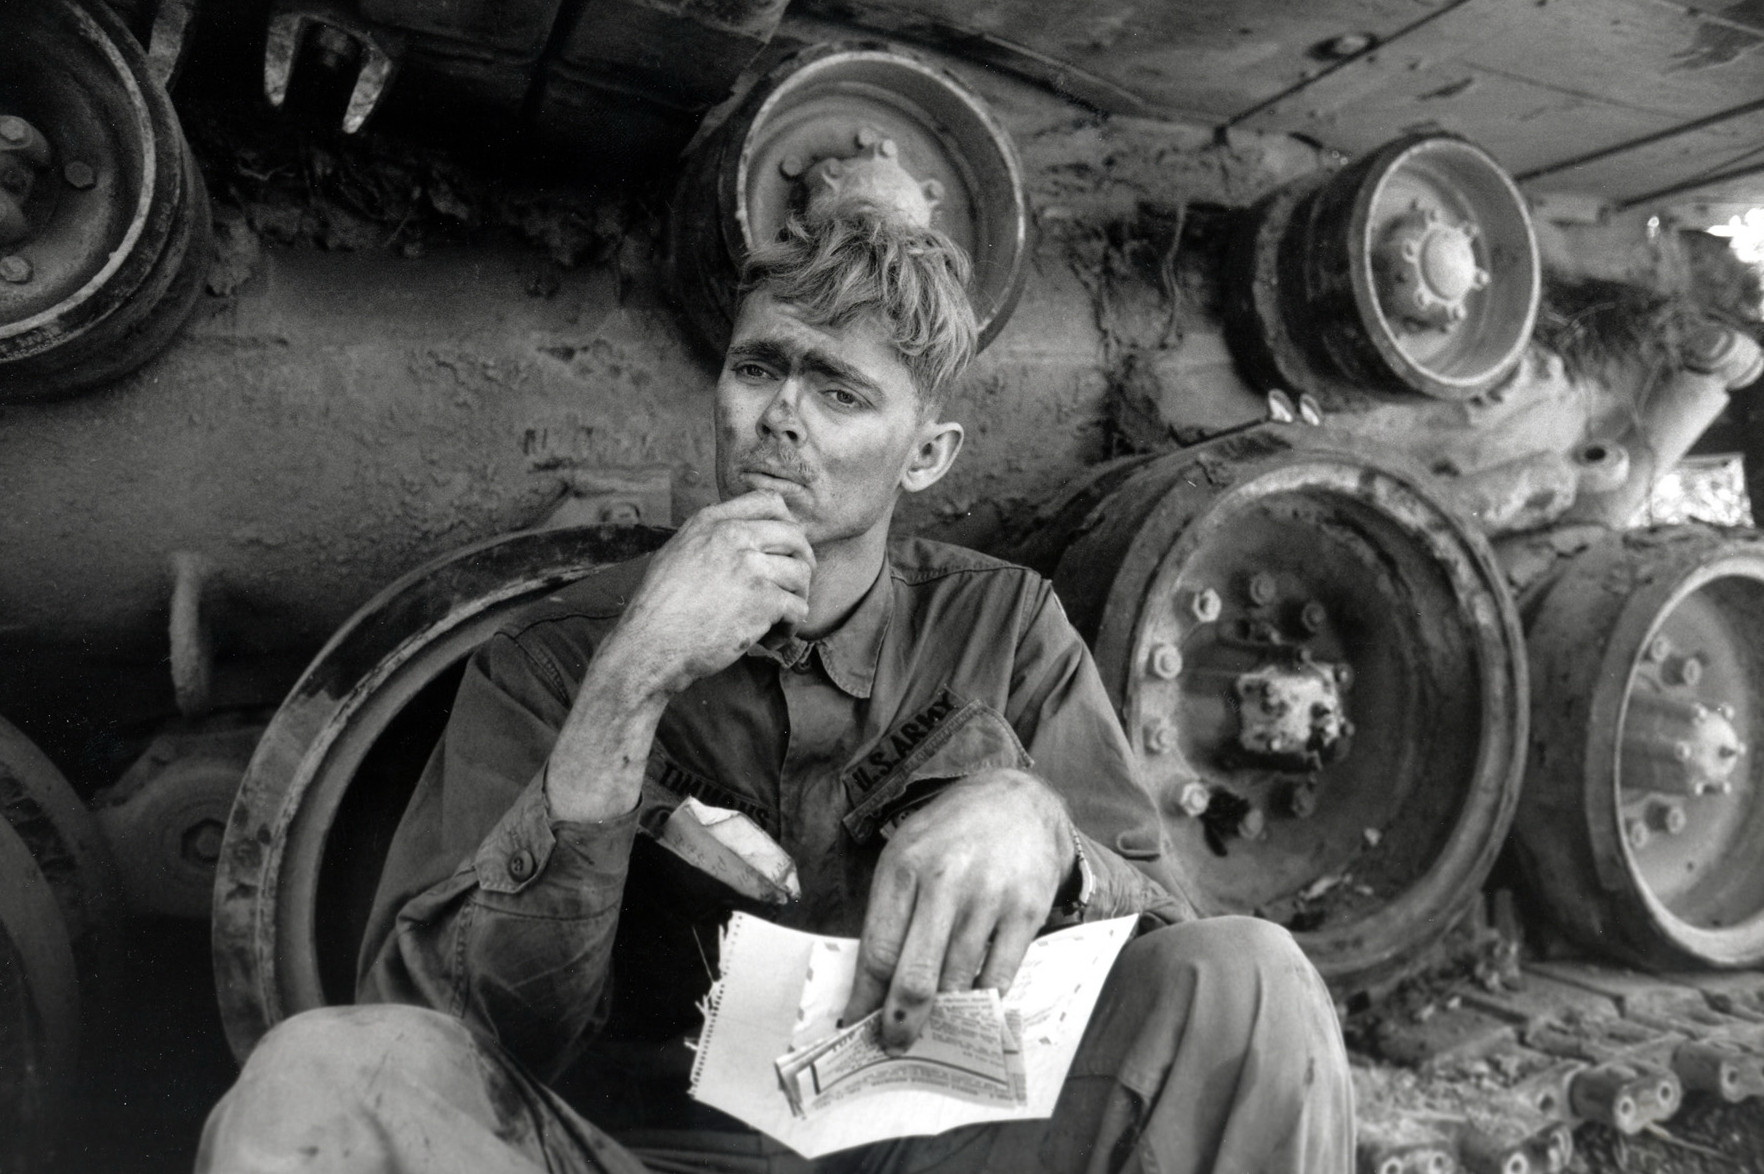 An American soldier reads a letter from home, while taking a break from repairing a tank tread. Lang Vei, South Vietnam, March 1971 © 2015 David Burnett/Contact Press Images